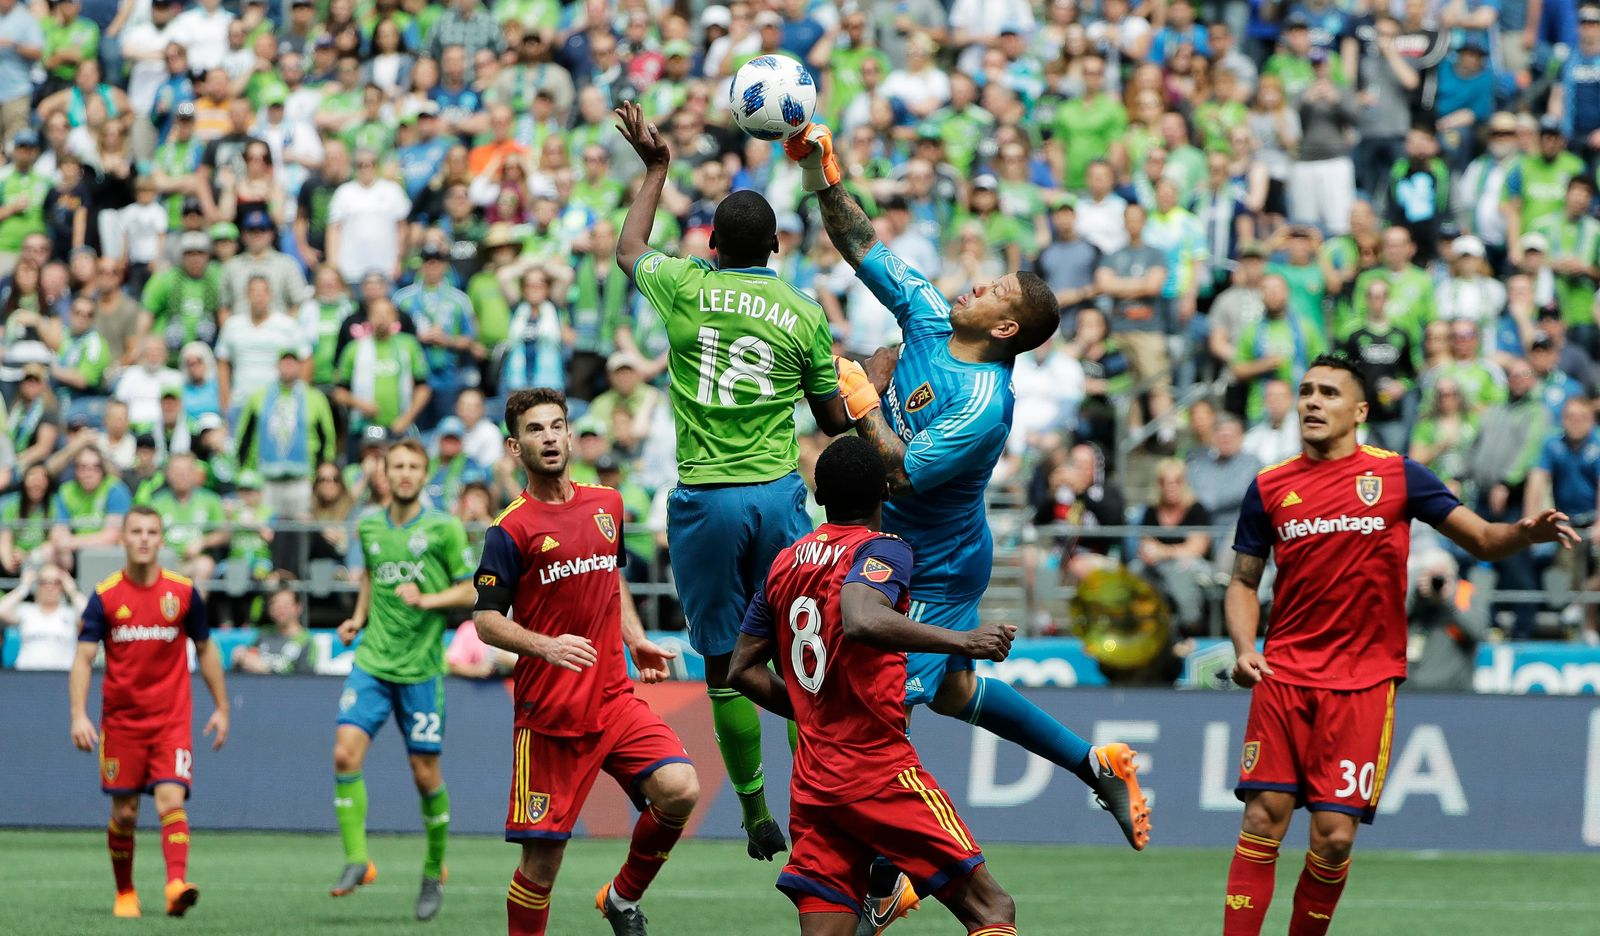 Real Salt Lake goalkeeper Nick Rimando, second from right, punches the ball away from Seattle Sounders defender Kelvin Leerdam (18) during the second half of an MLS soccer match Saturday, May 26, 2018, in Seattle. Real Salt Lake won 1-0. (AP Photo/Ted S. Warren)